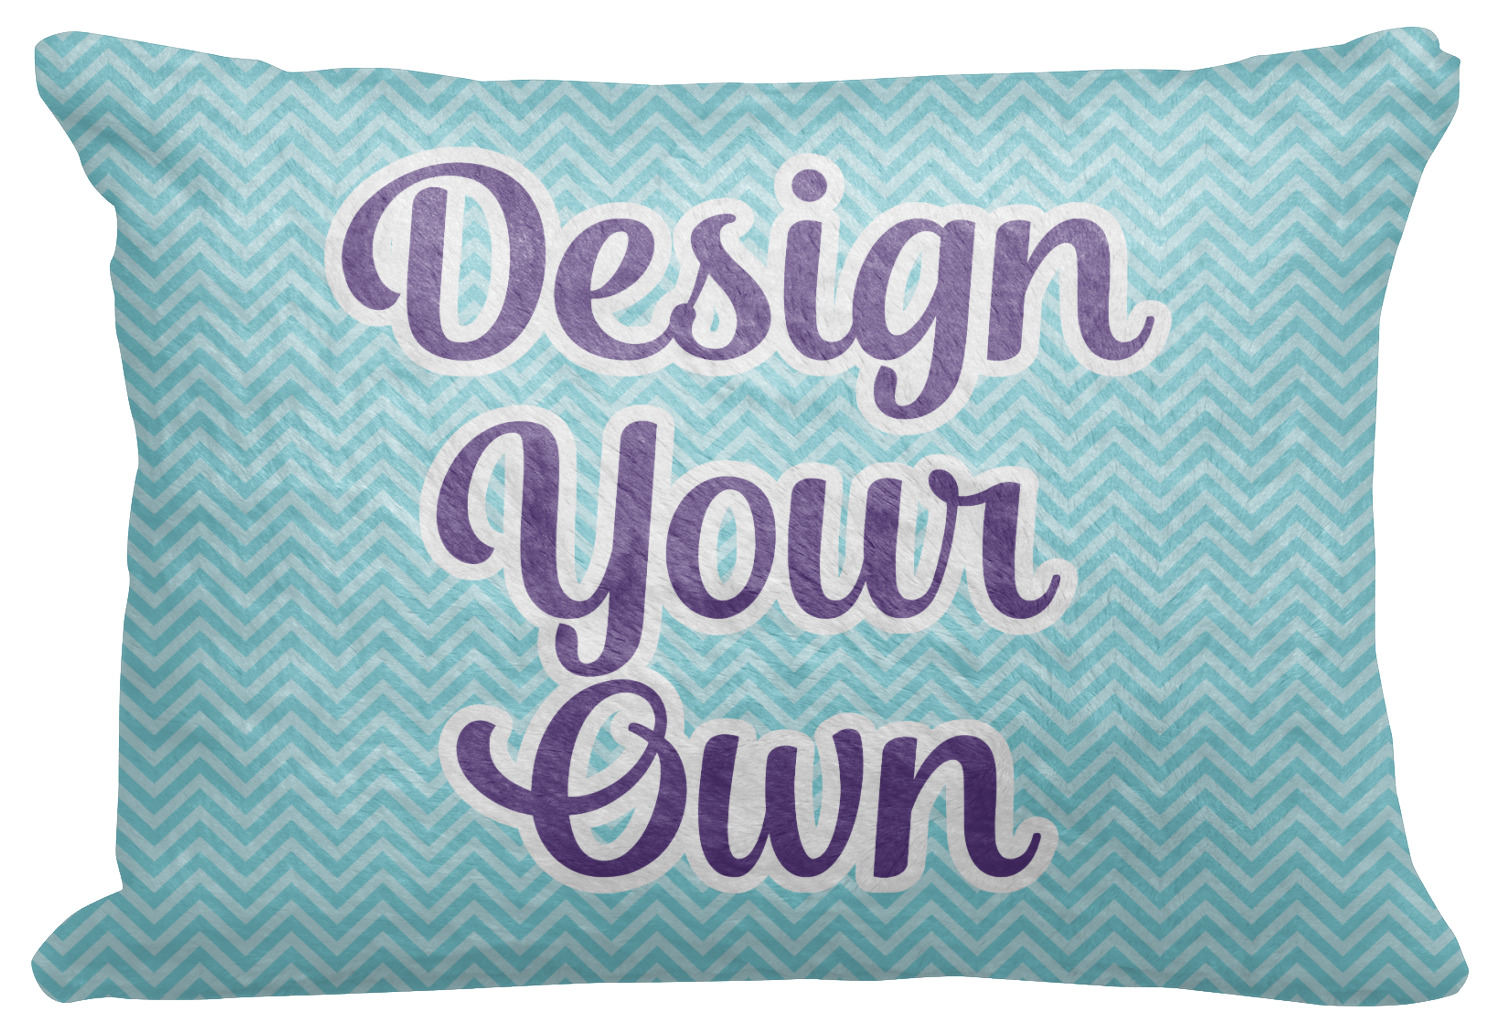 how to make your own pillowcase